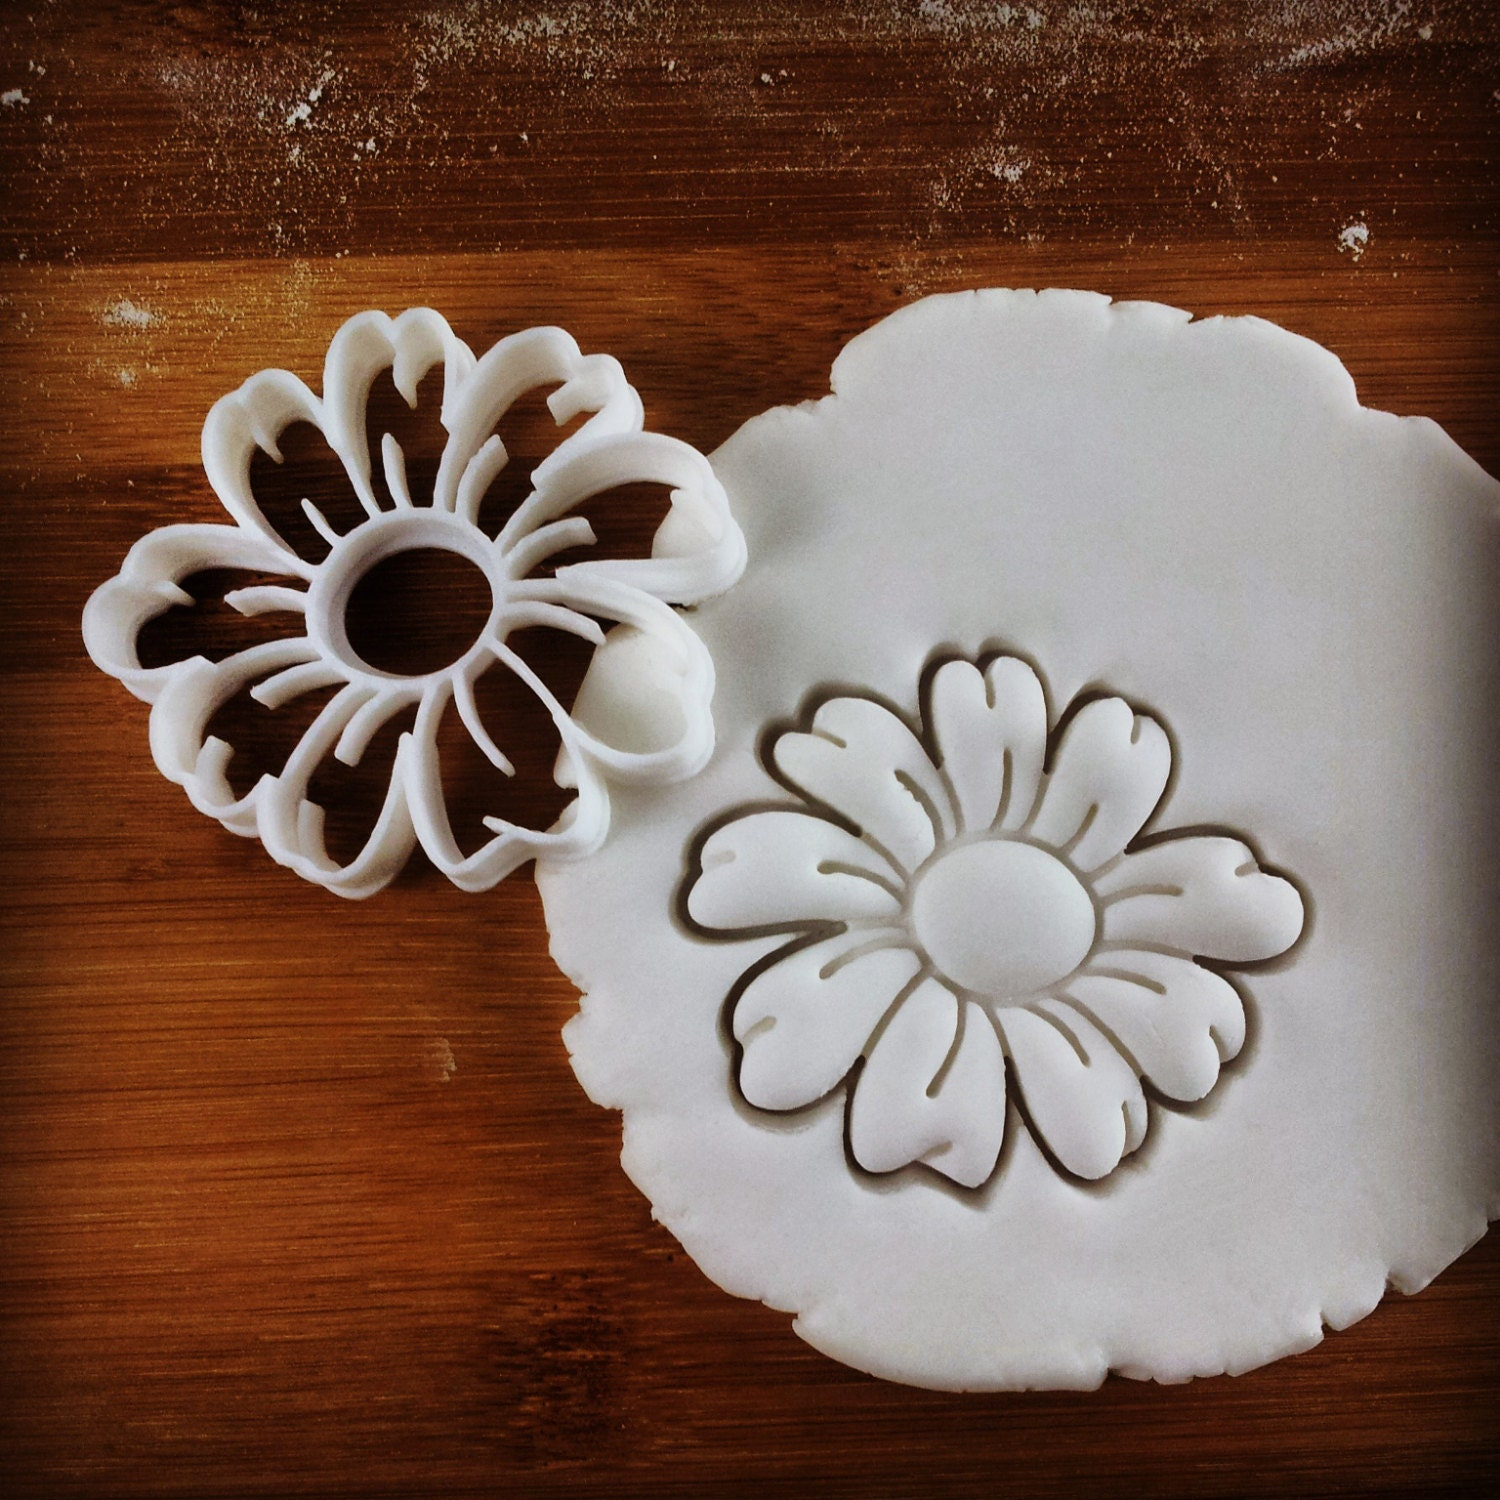 Daisy Flower Cookie Cutter Biscuit Cutters Flowers Etsy